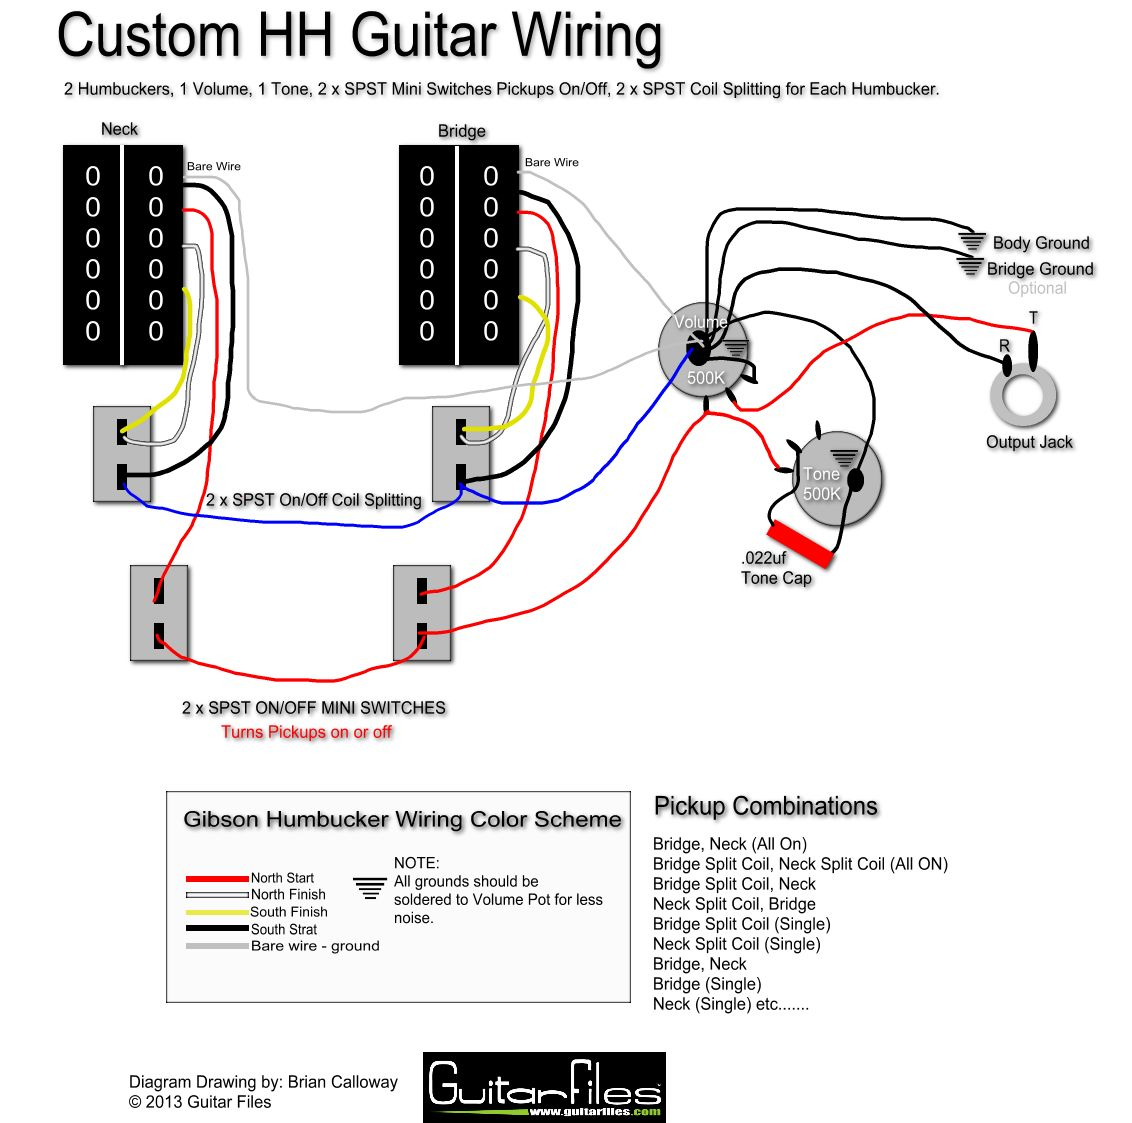 Spst Switch Wiring Diagram 1970 Ford Fairlane Humbucker Pickup Coil Tap All Data Custom Hh With Splitting And Switching Single